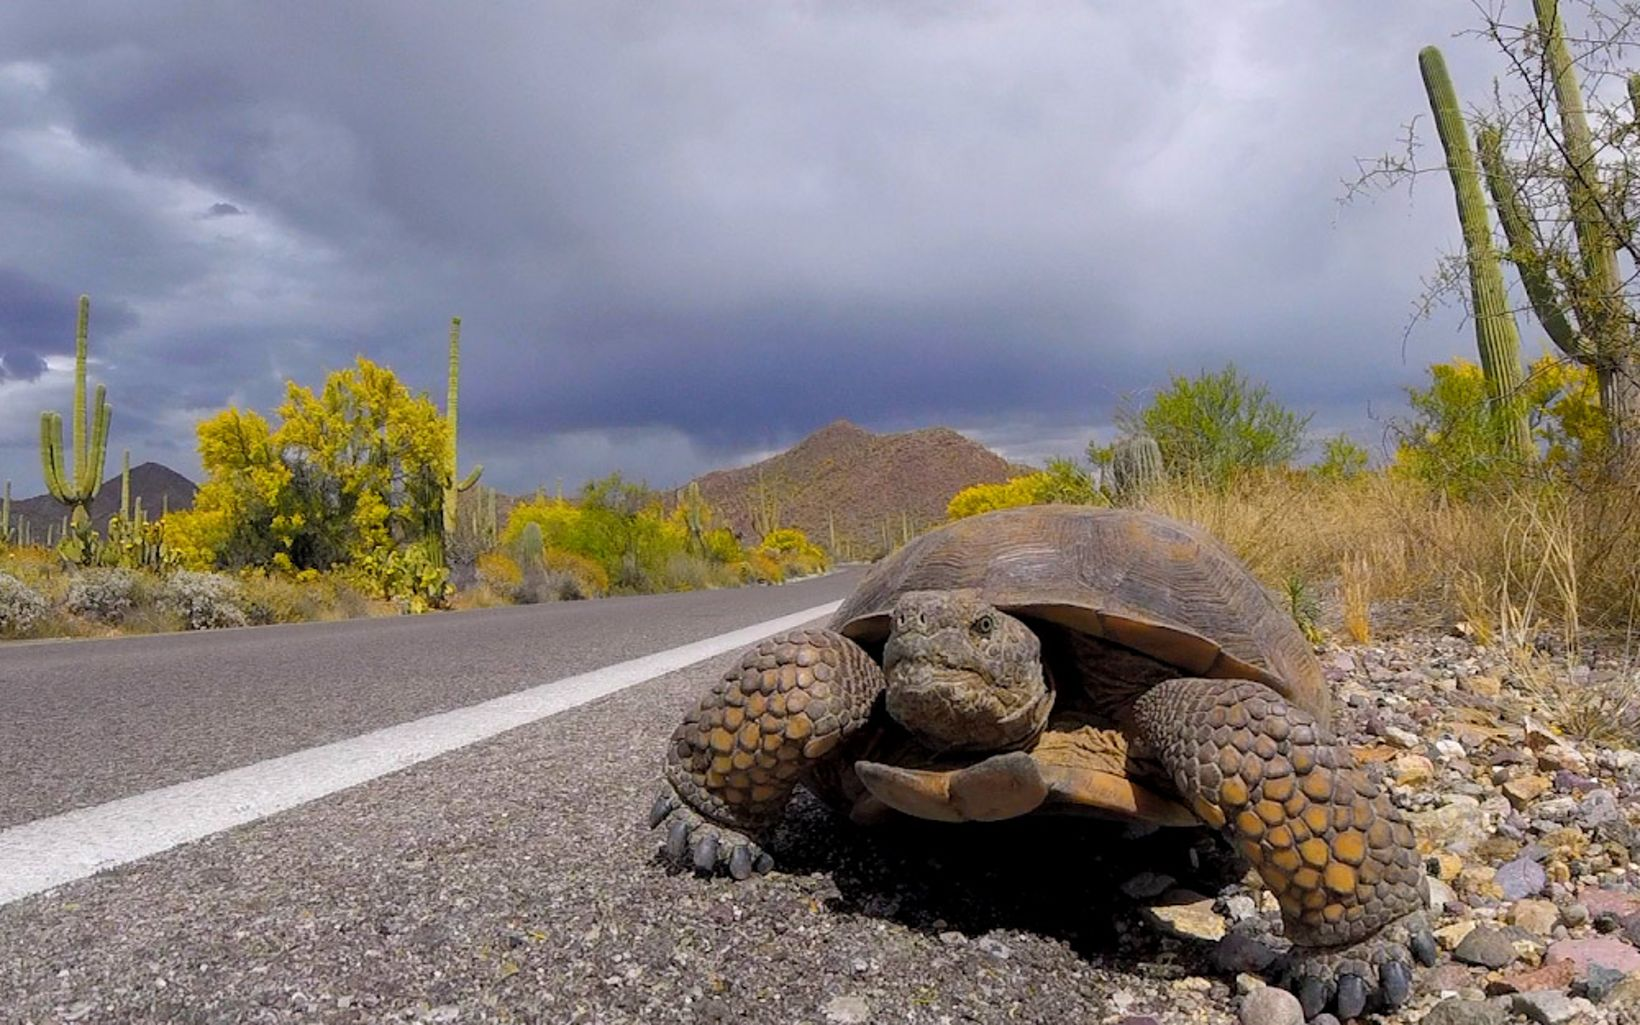 View from ground level looking head-on at a tortoise walking along the side of a highway in a desert landscape under a cloudy sky.